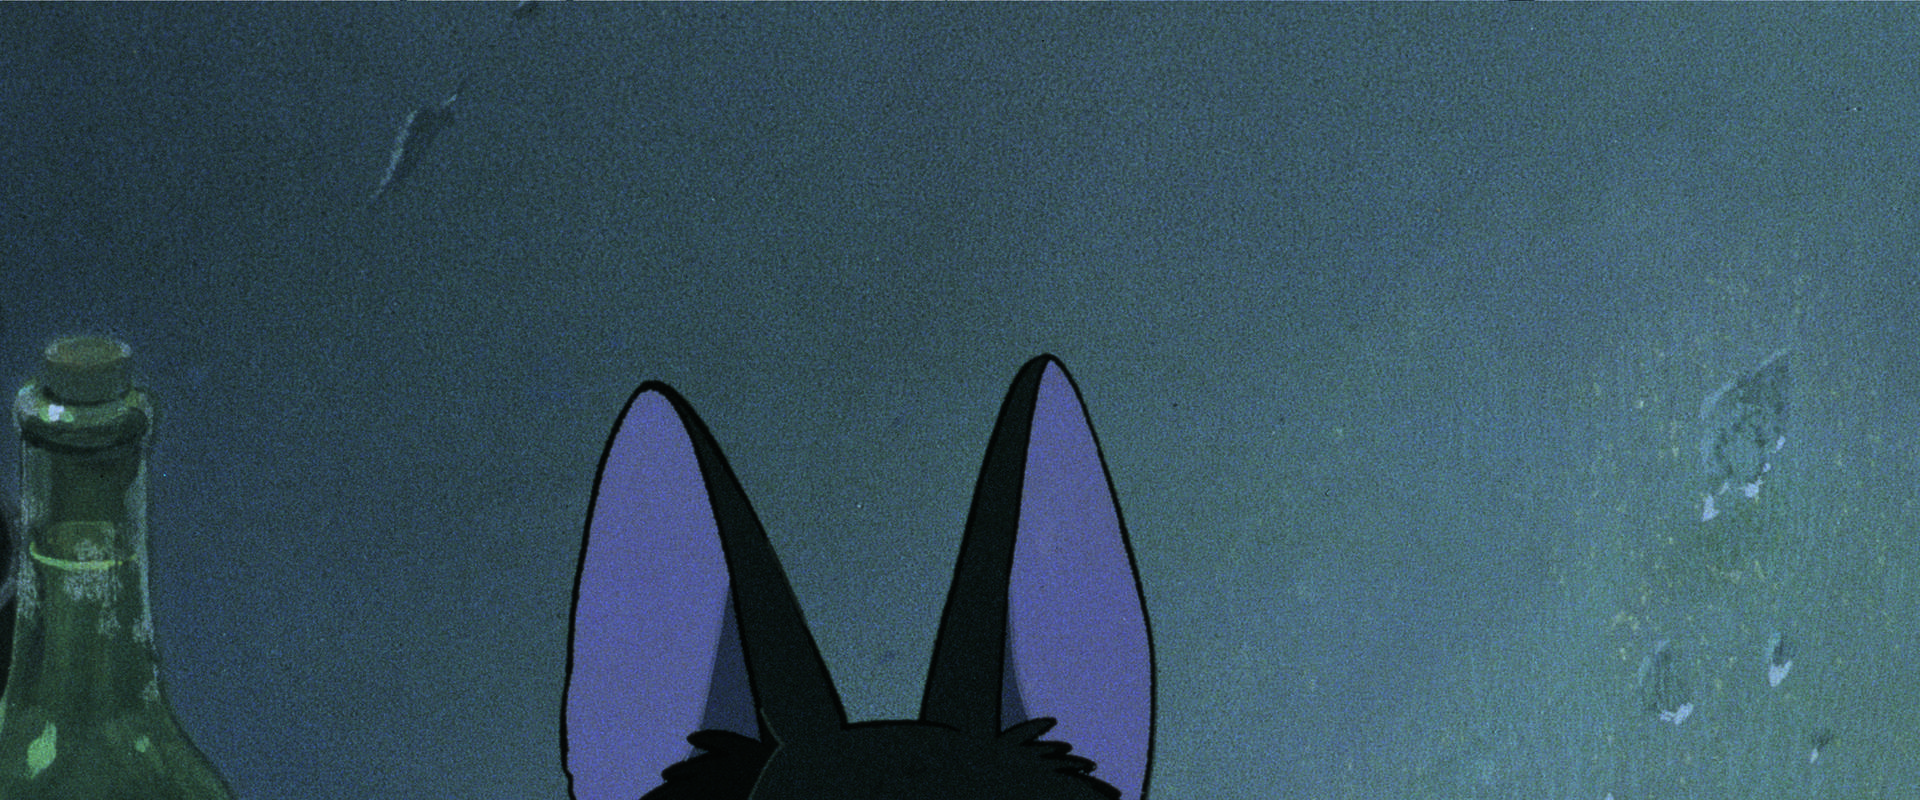 Kiki's Delivery Service background 1